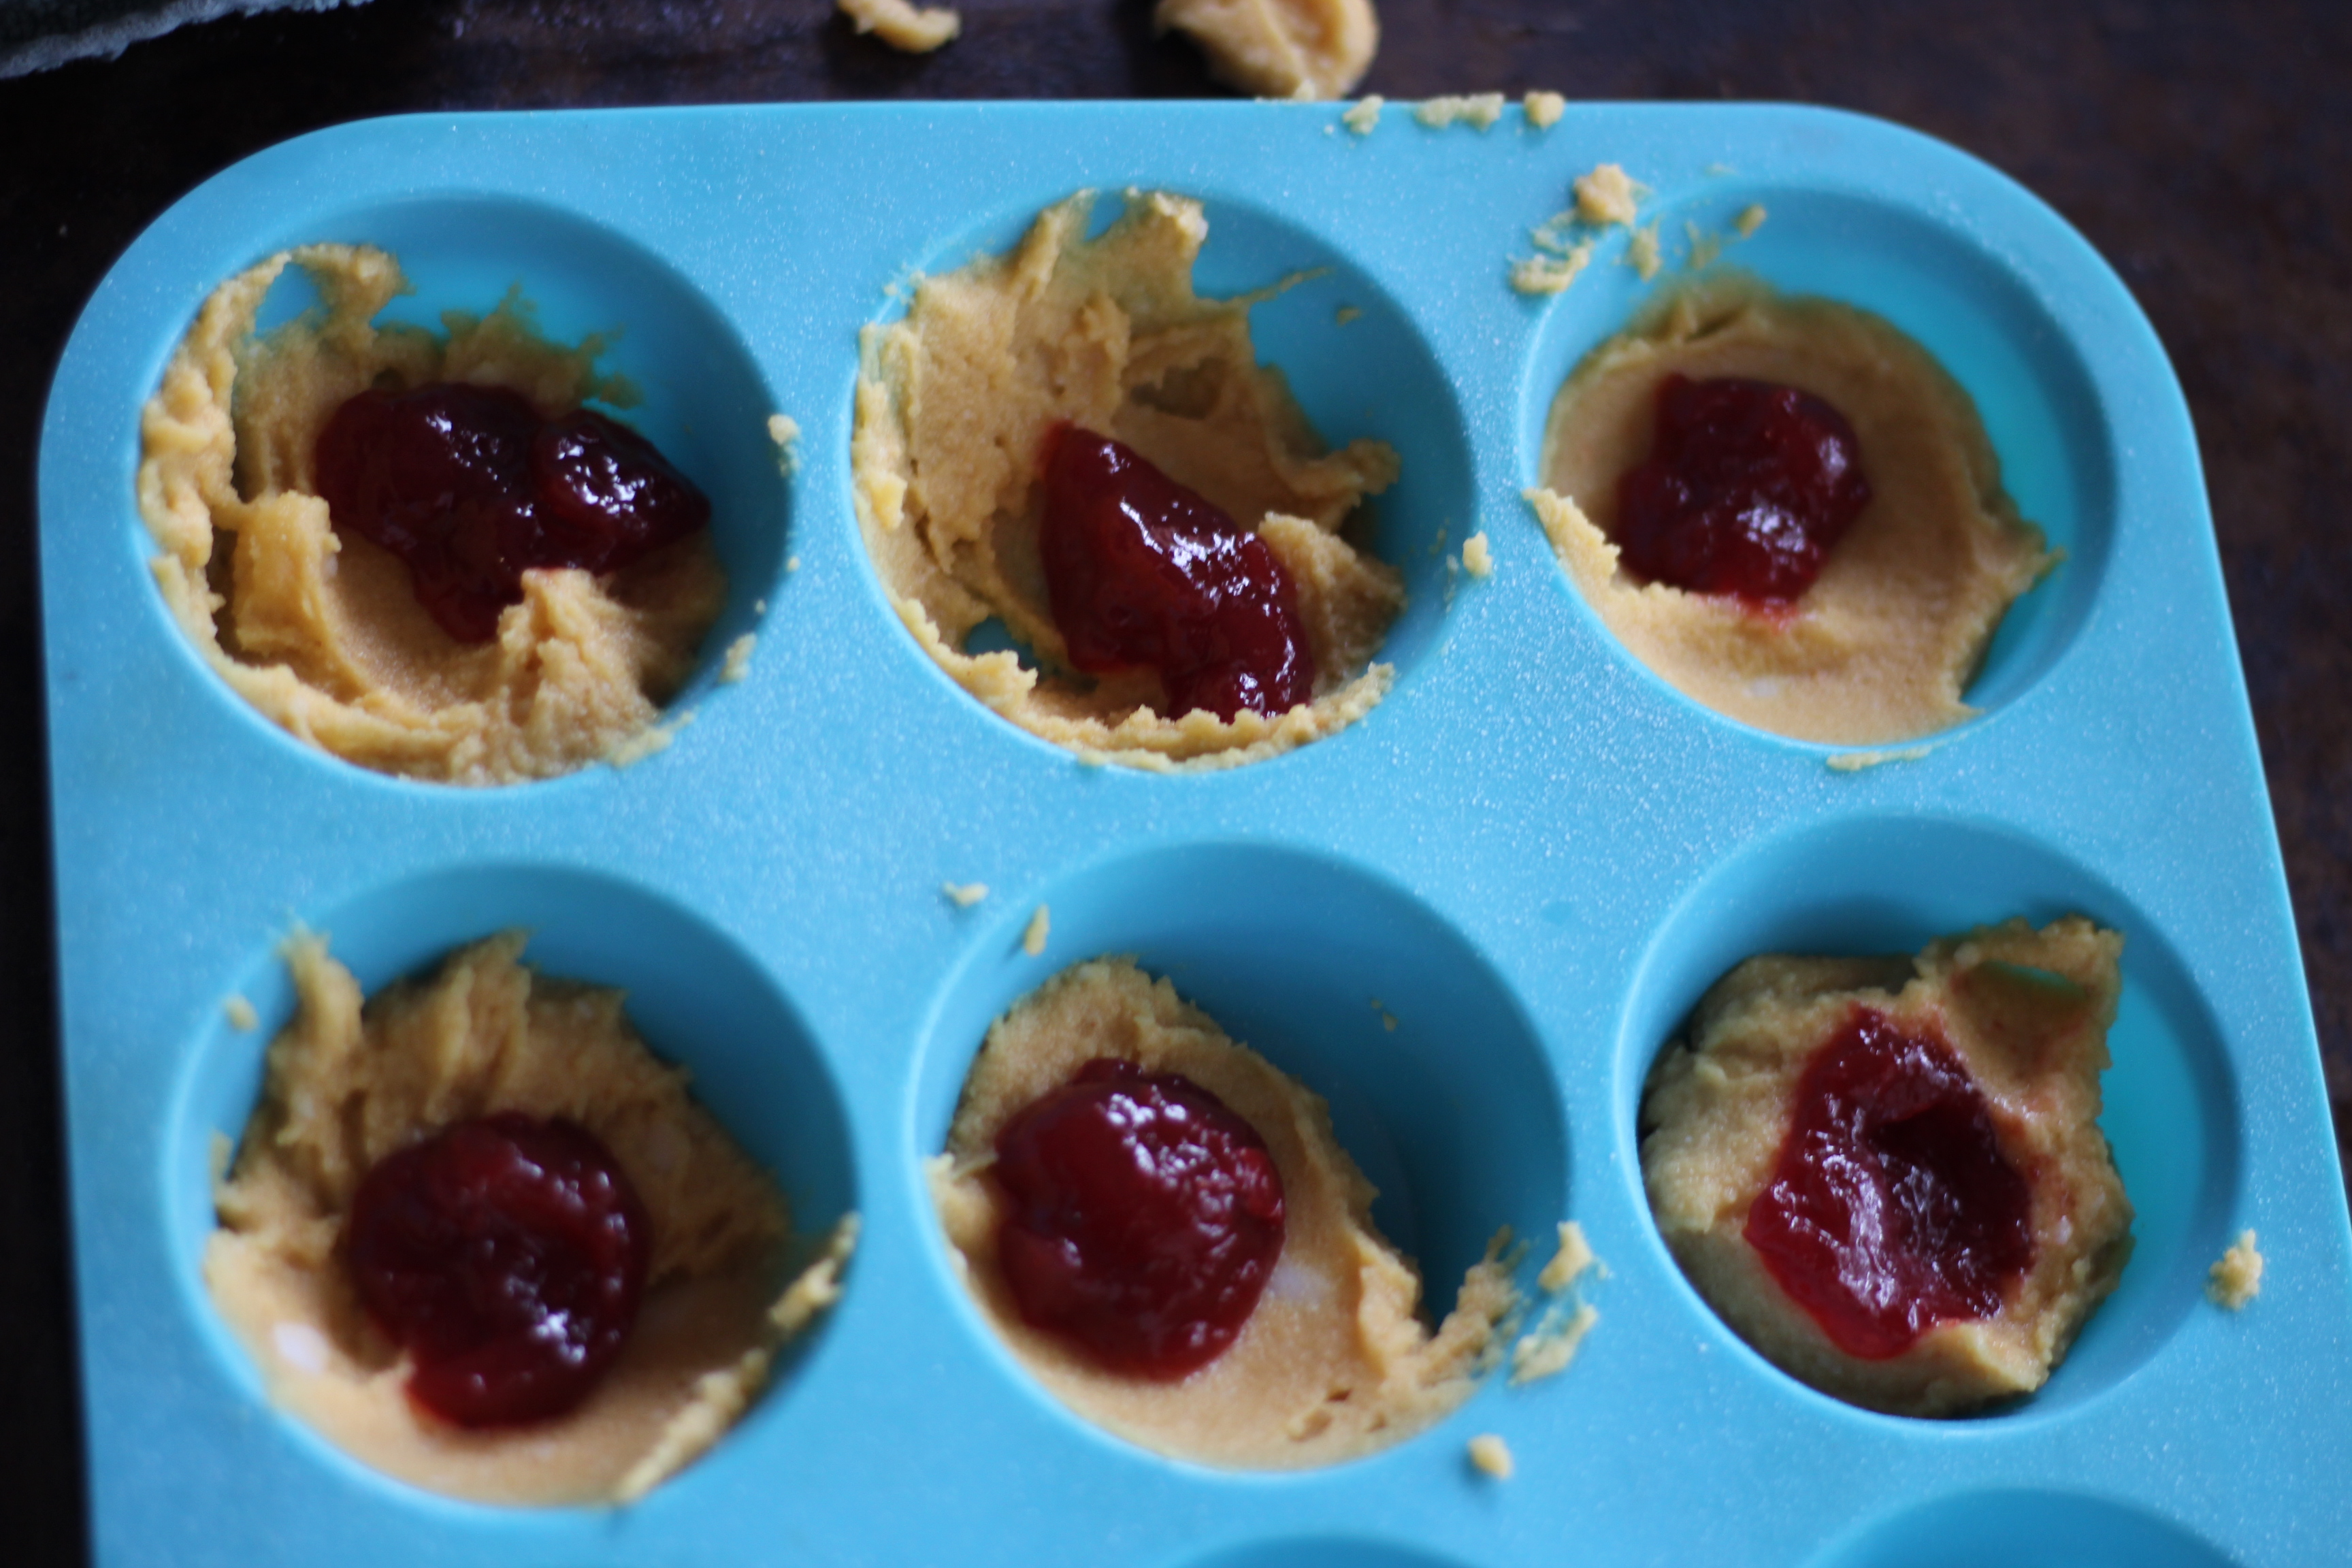 Looking for a low carb muffin recipe that the kids will love? These keto approved PB&J Muffins are so good that they can be eaten for breakfast or as a treat.